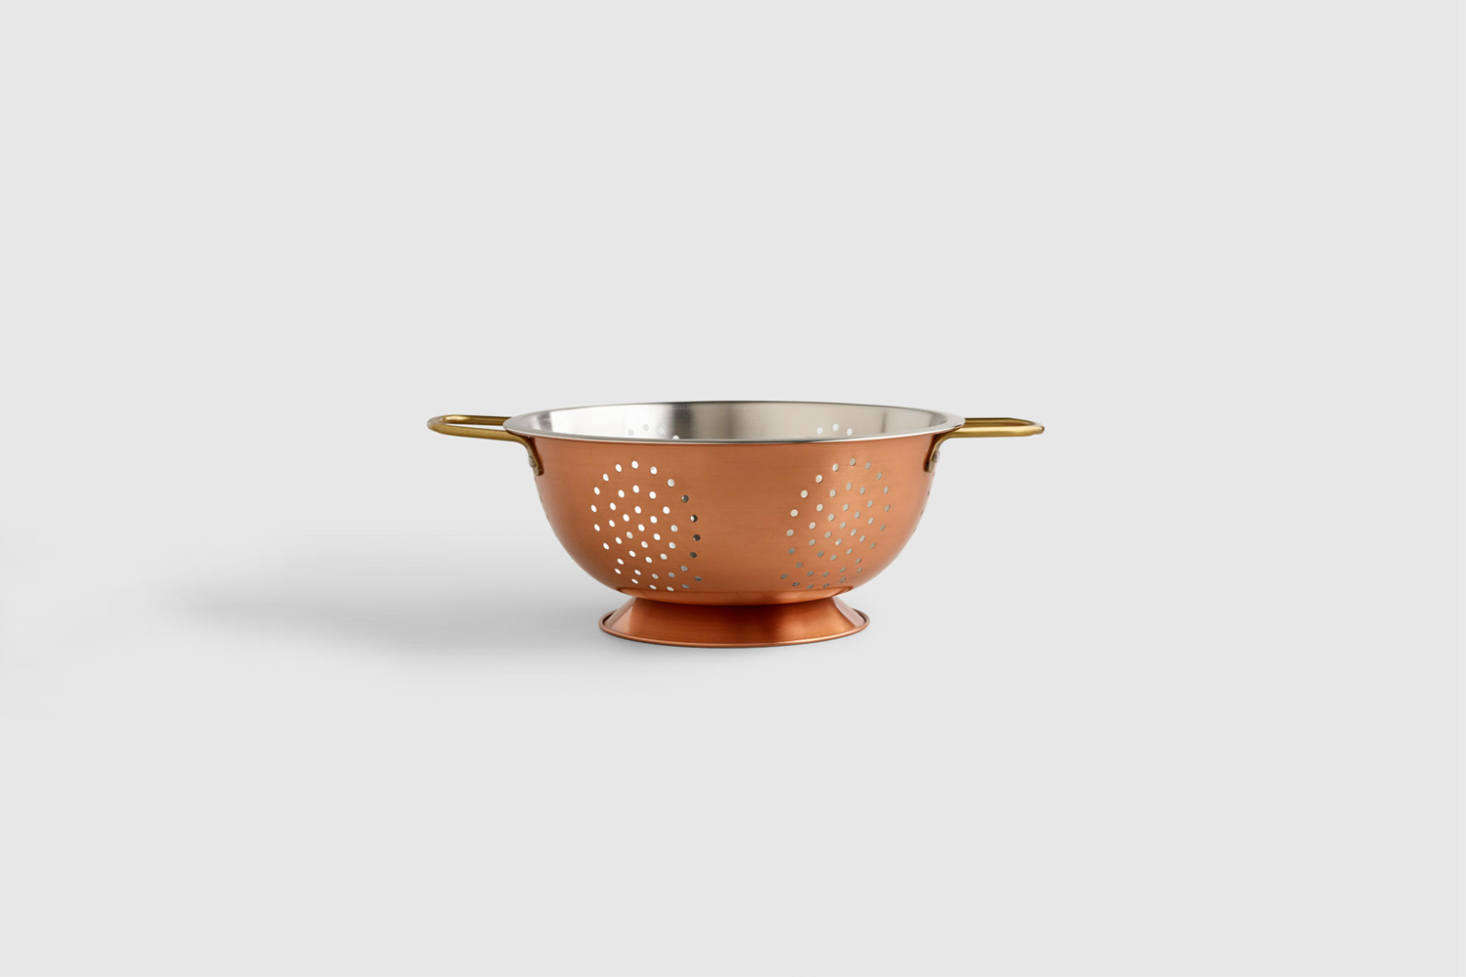 The Copper Colander with a stainless steel interior is $12.99 at World Market.